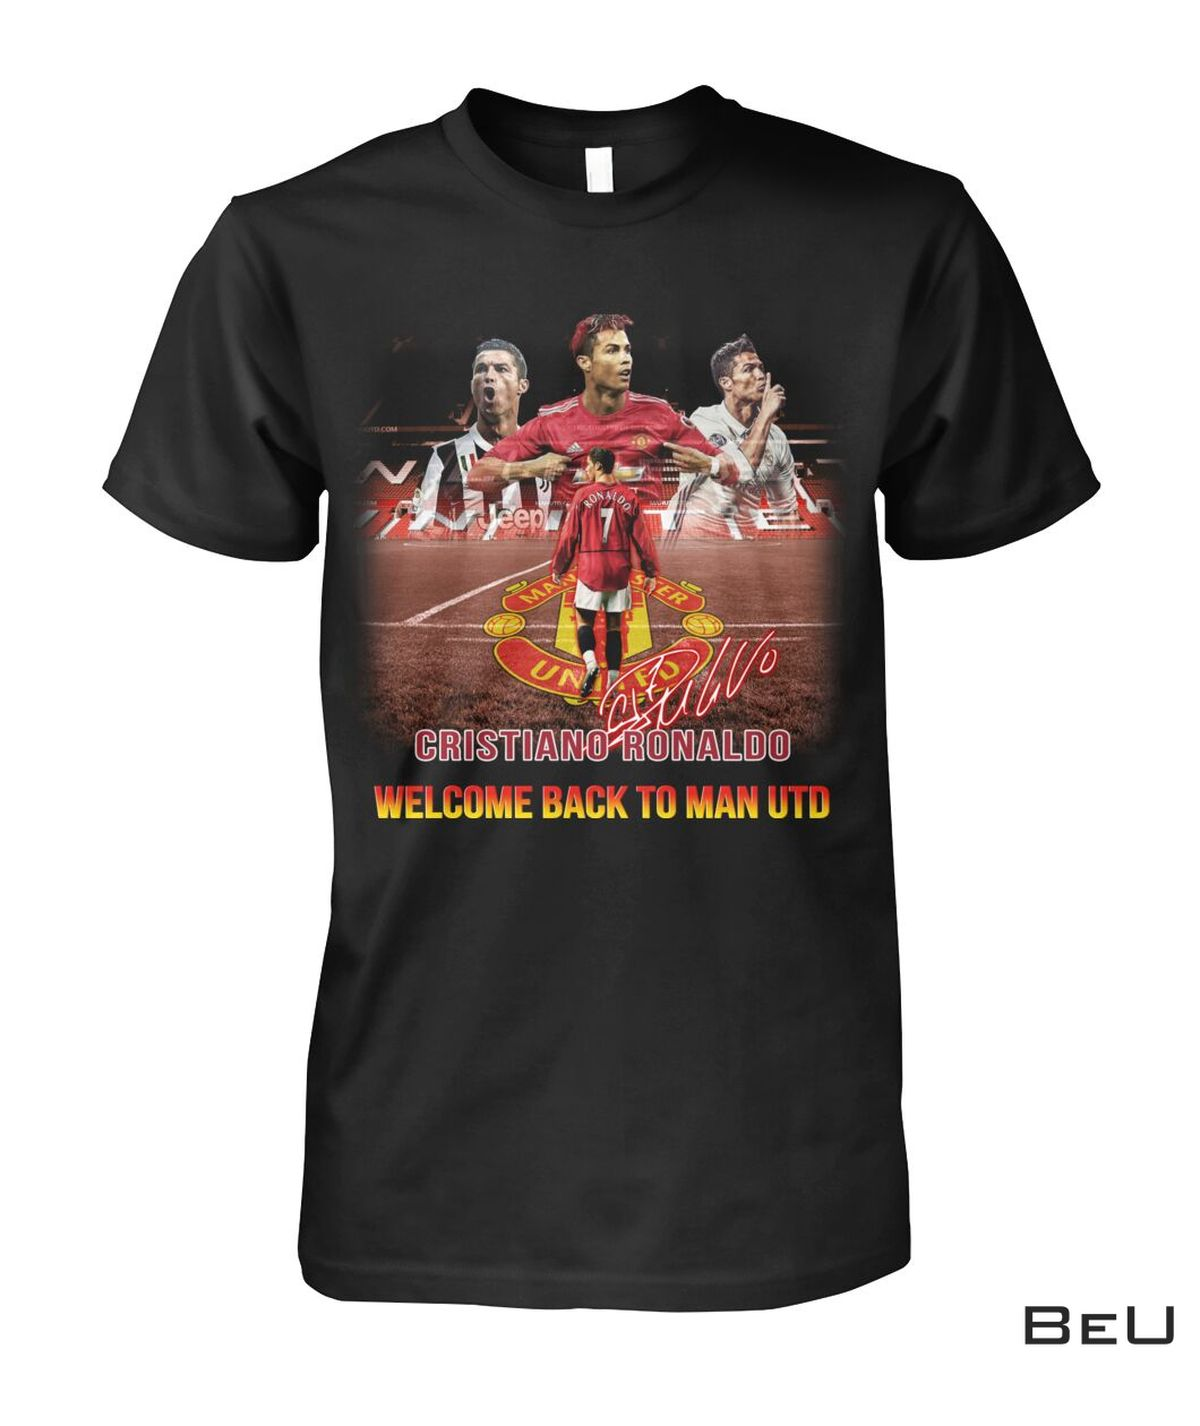 Cristiano Ronaldo Welcome Back To Manchester United Shirt, hoodie, tank top